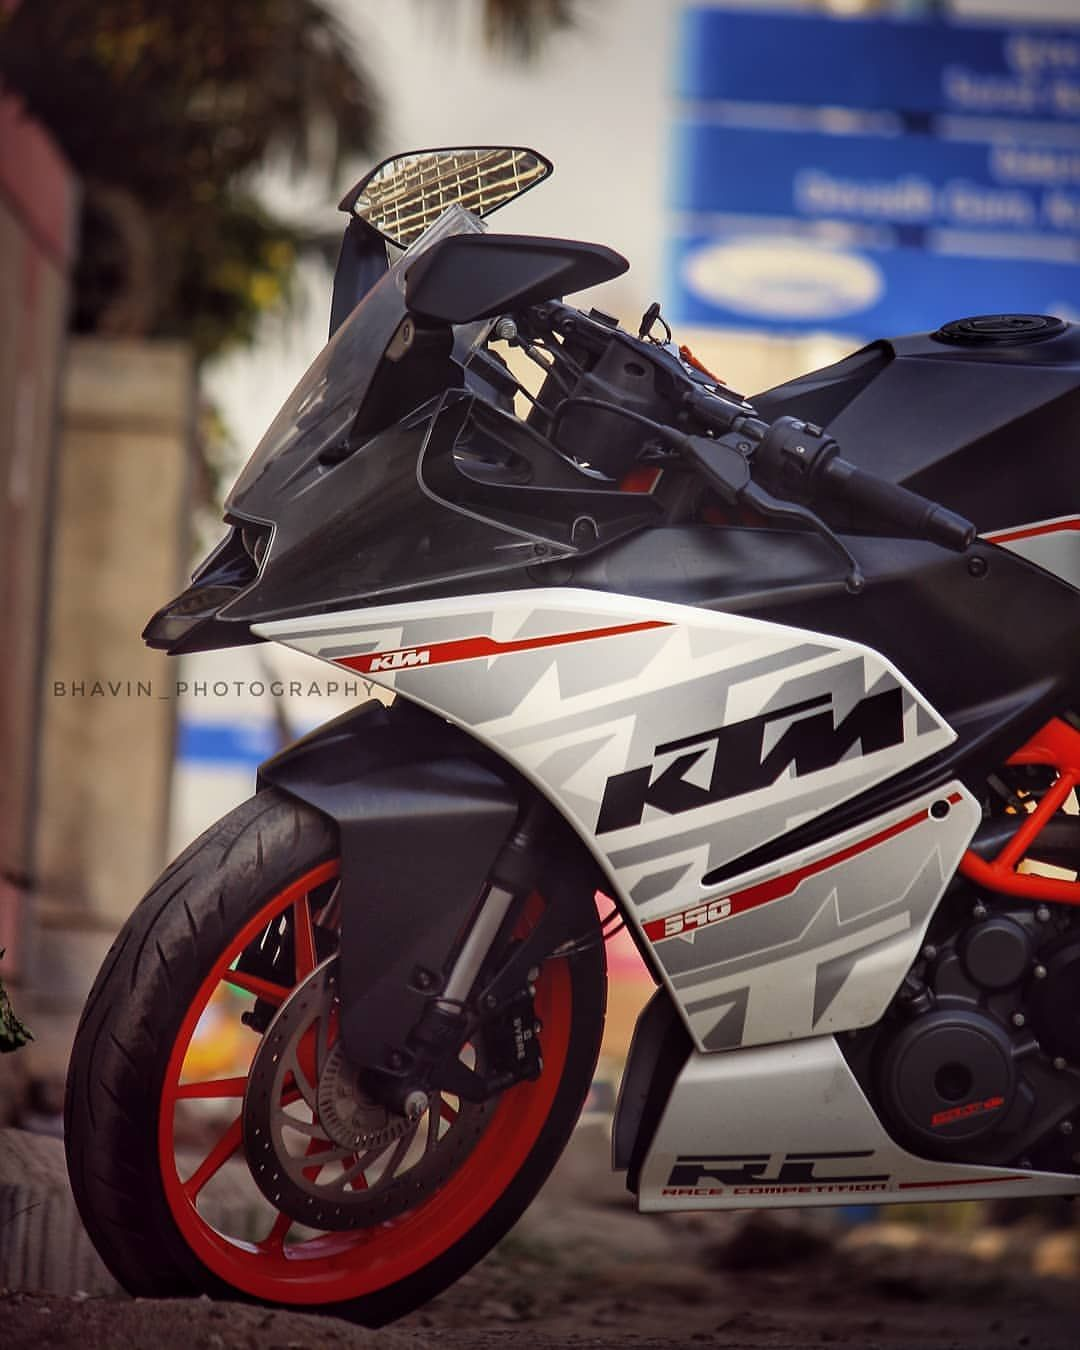 Old Rc390 Follow Us To Get Updates From The Exciting World Of